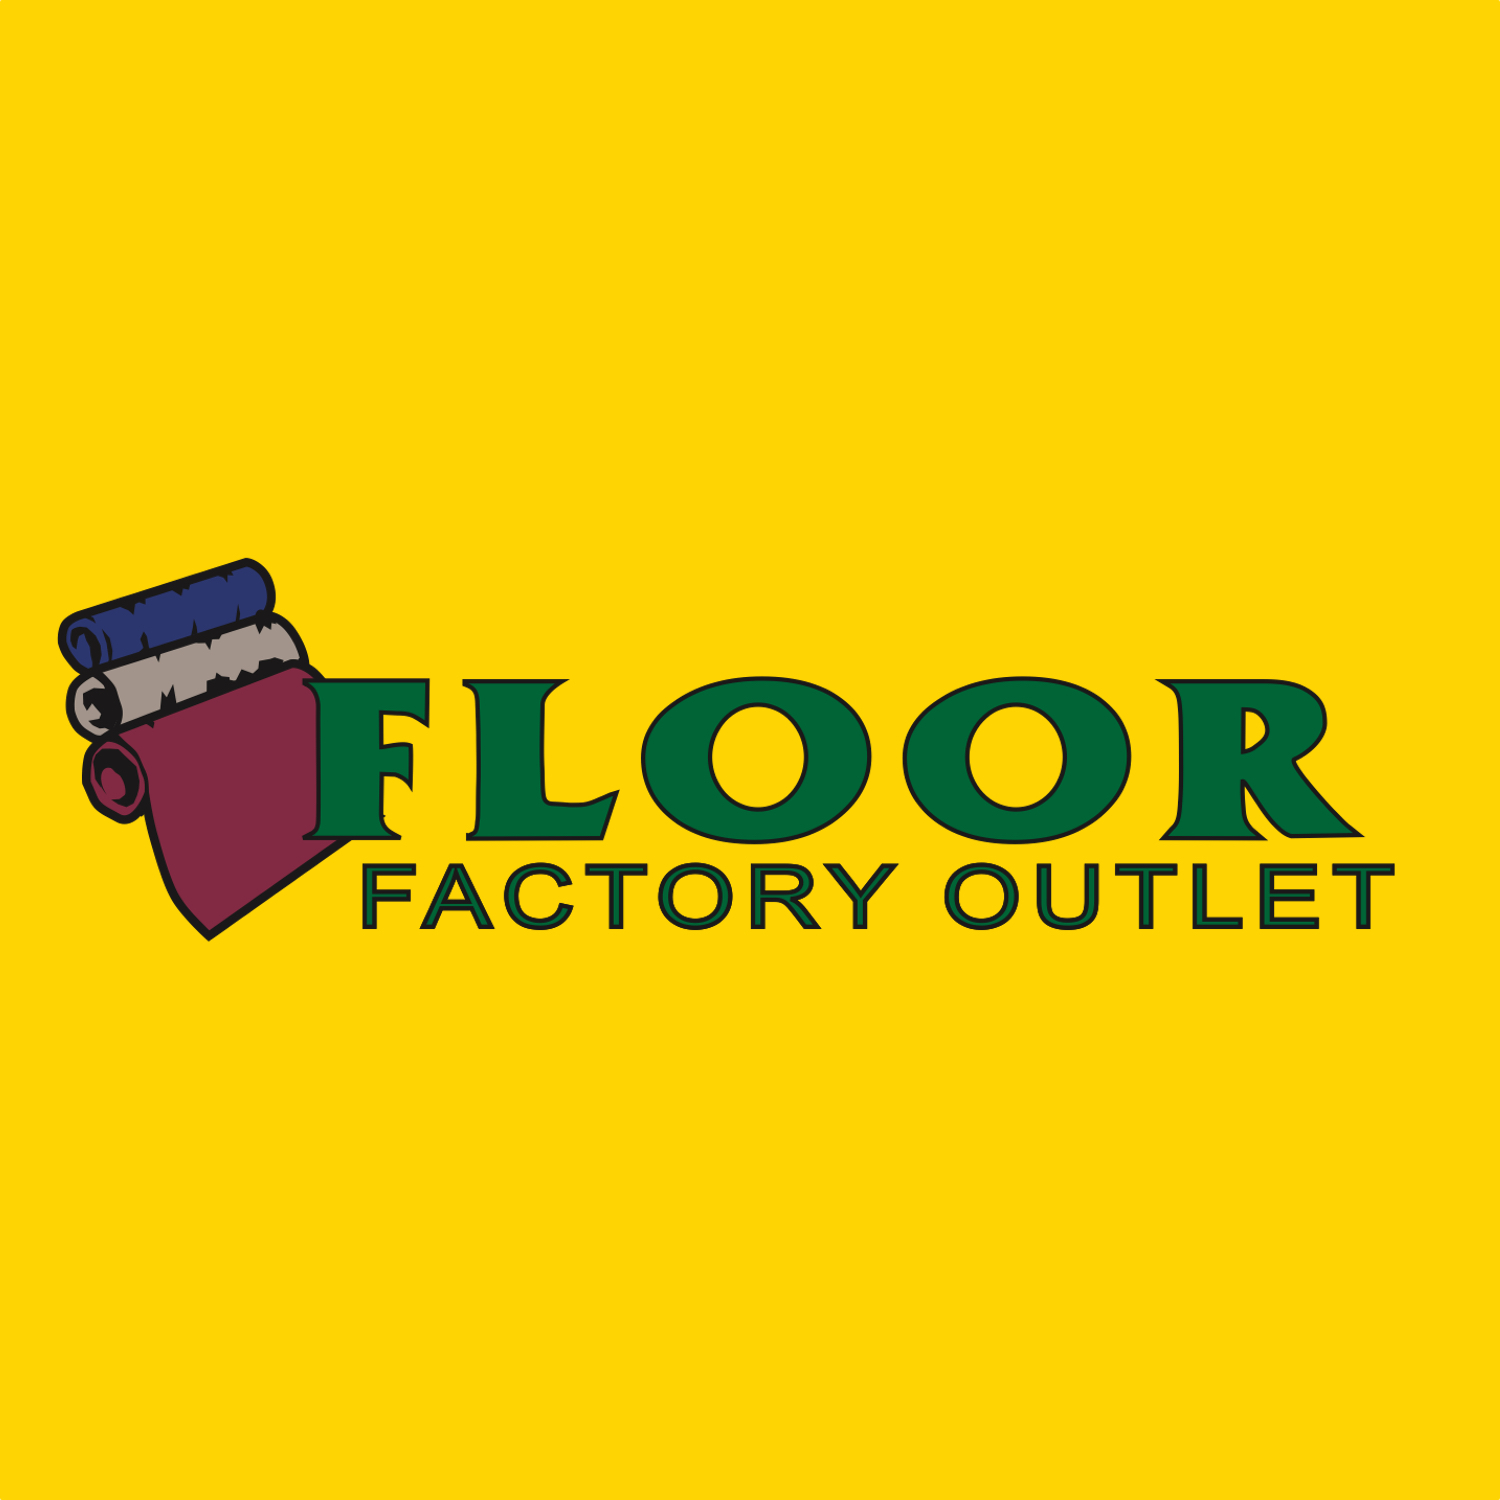 Floor Factory Outlet